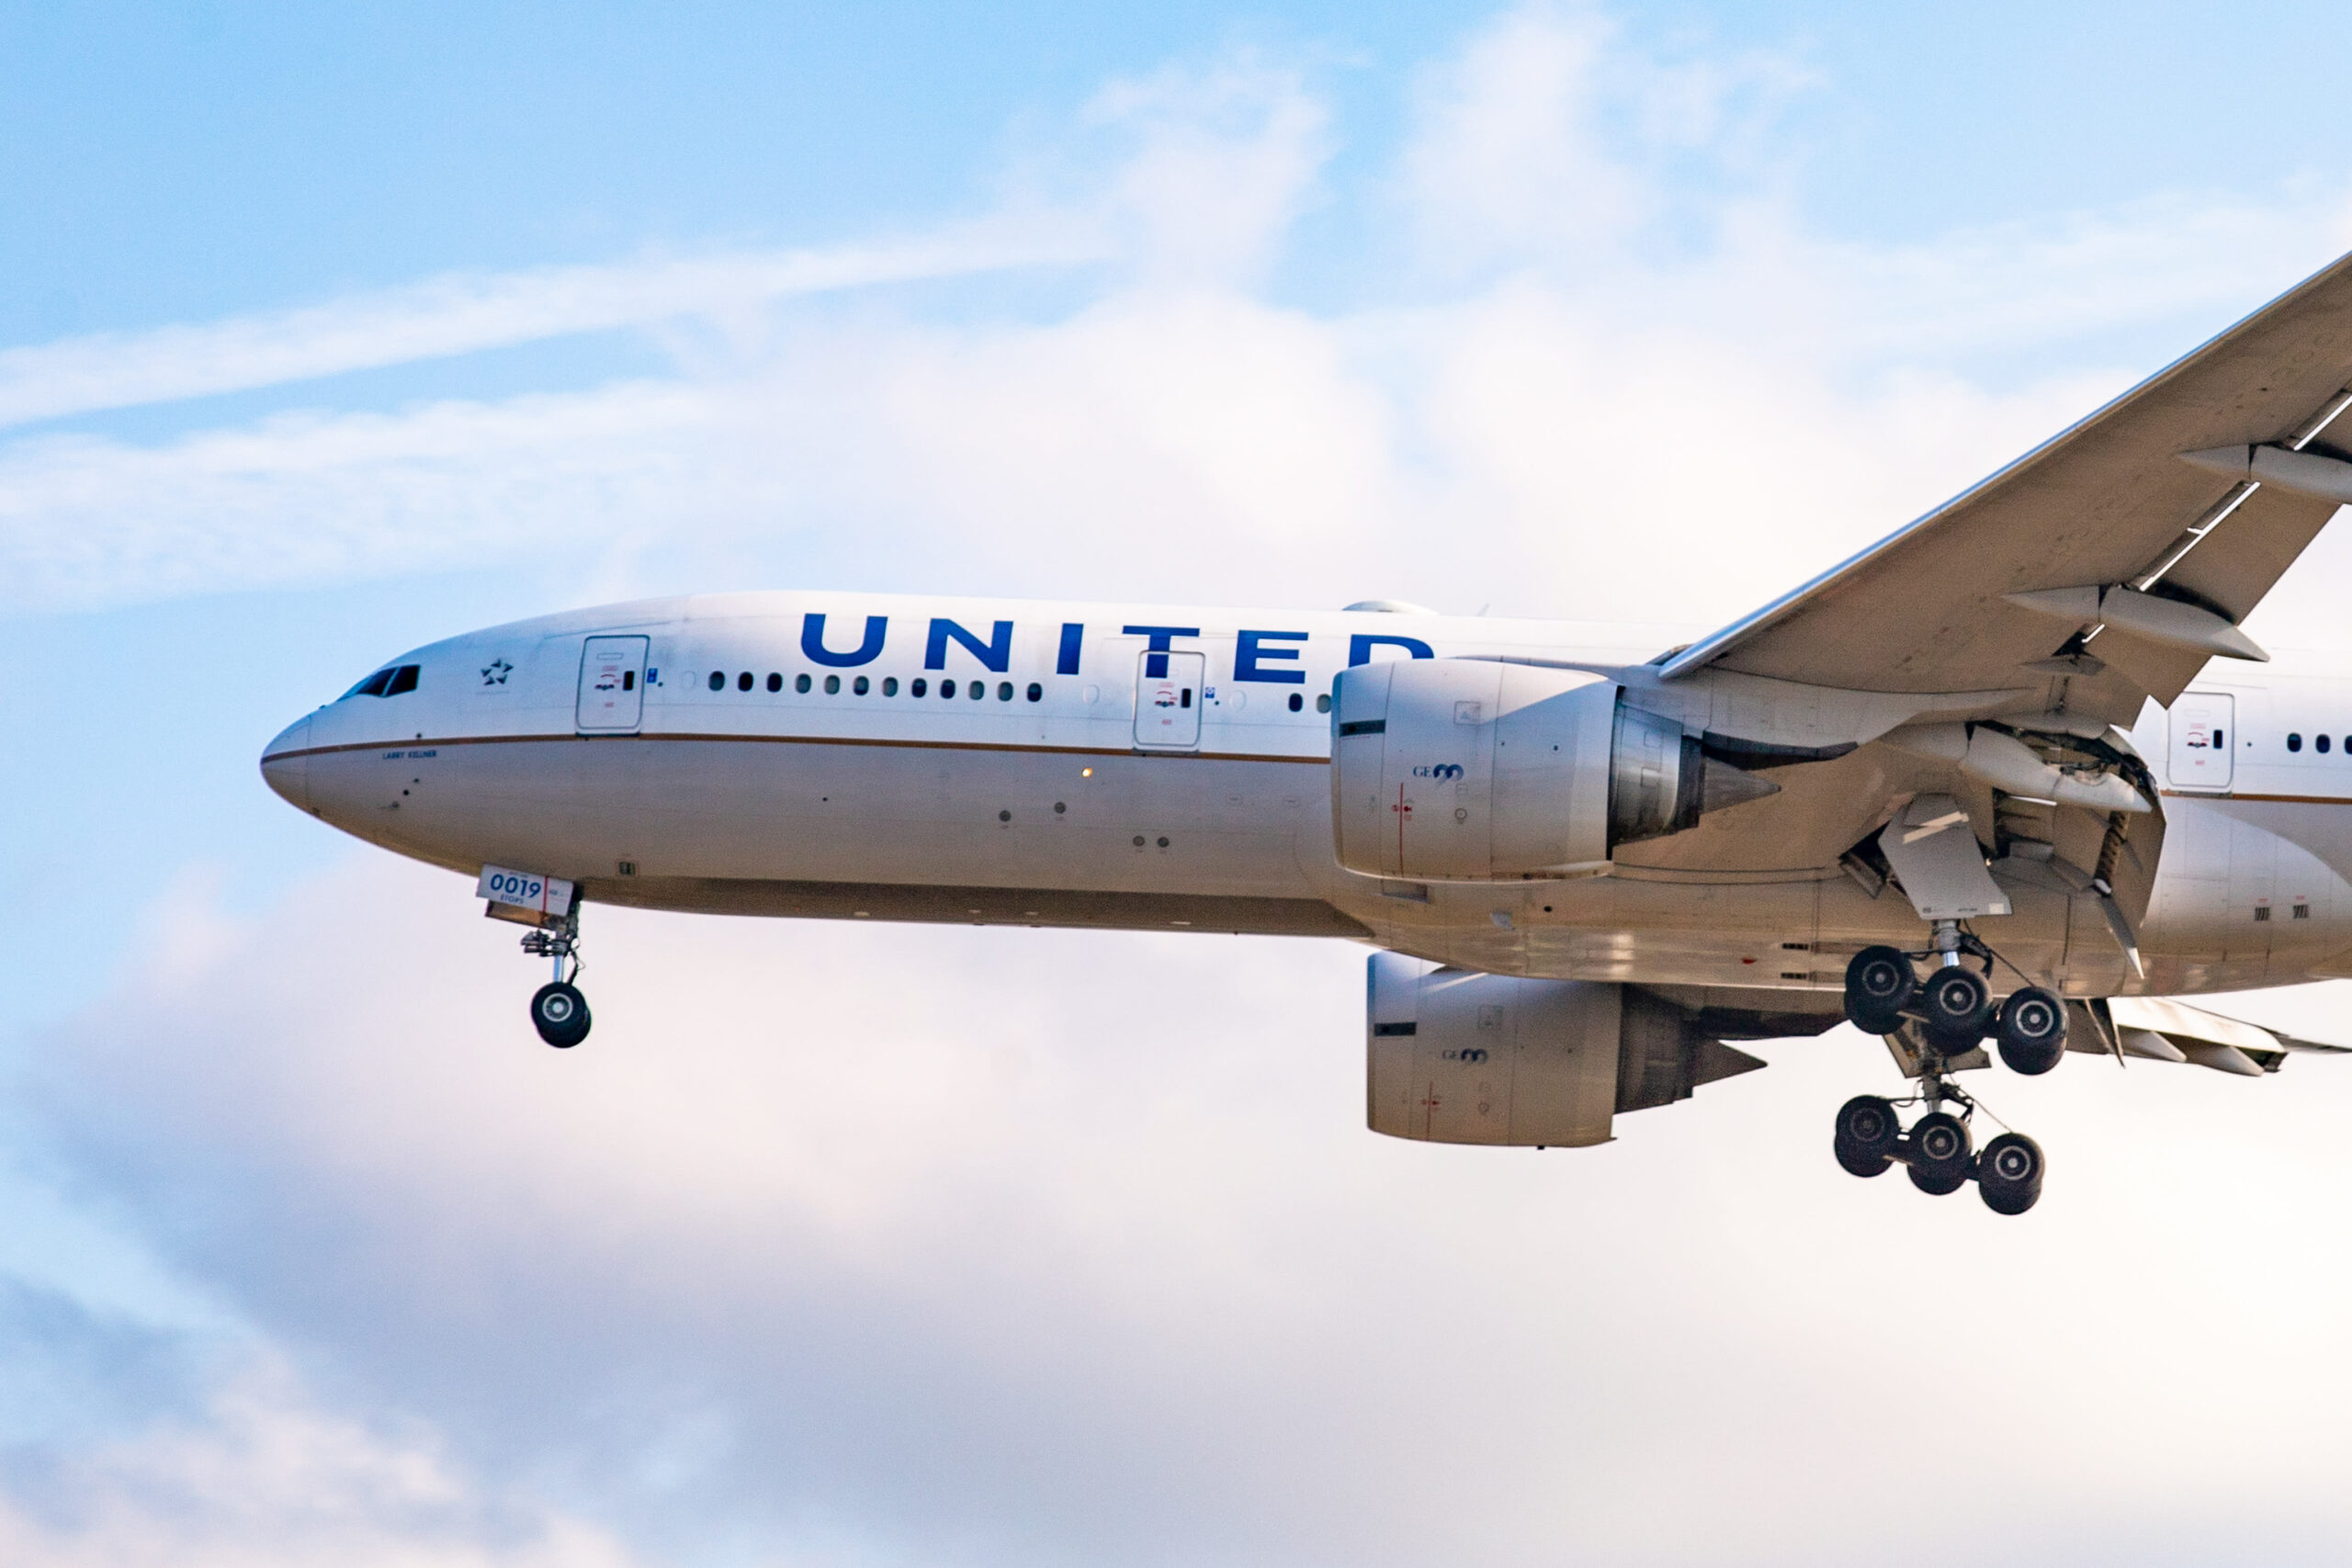 United, pilots union reach agreements for early retirements and voluntary furloughs